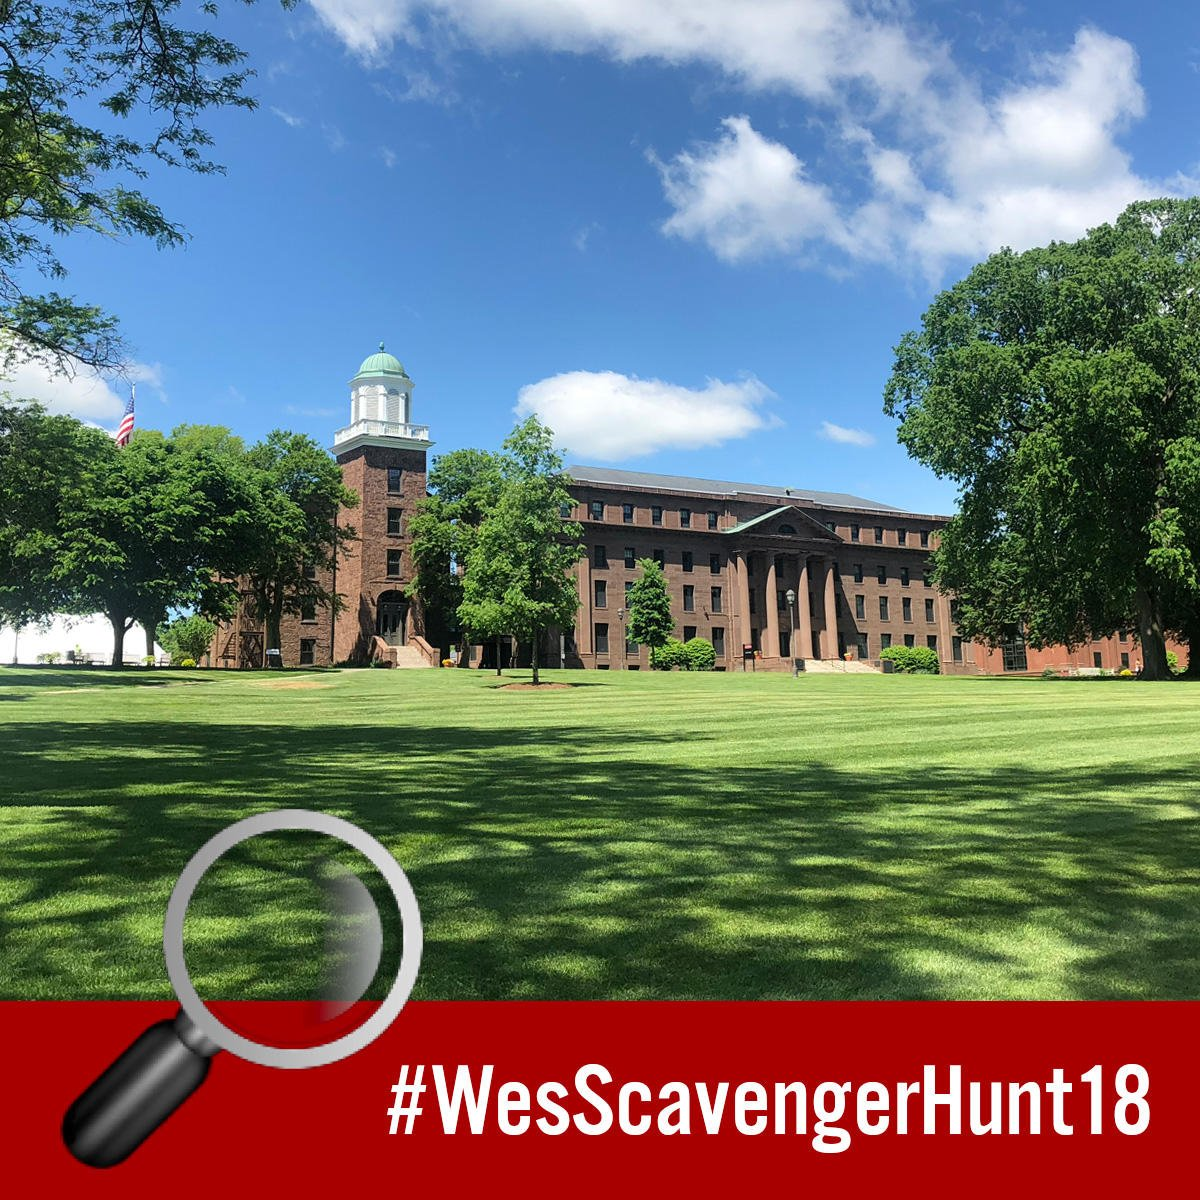 test Twitter Media - 🔍 Clue 4: Take a selfie with a Wesleyan alumnus who became a professional football star. 🏈 @Wes_Athletics  #WesScavengerHunt18 #NationalScavengerHuntDay    More clues: https://t.co/iwQIXnDb7K https://t.co/X5Mtm93FK2